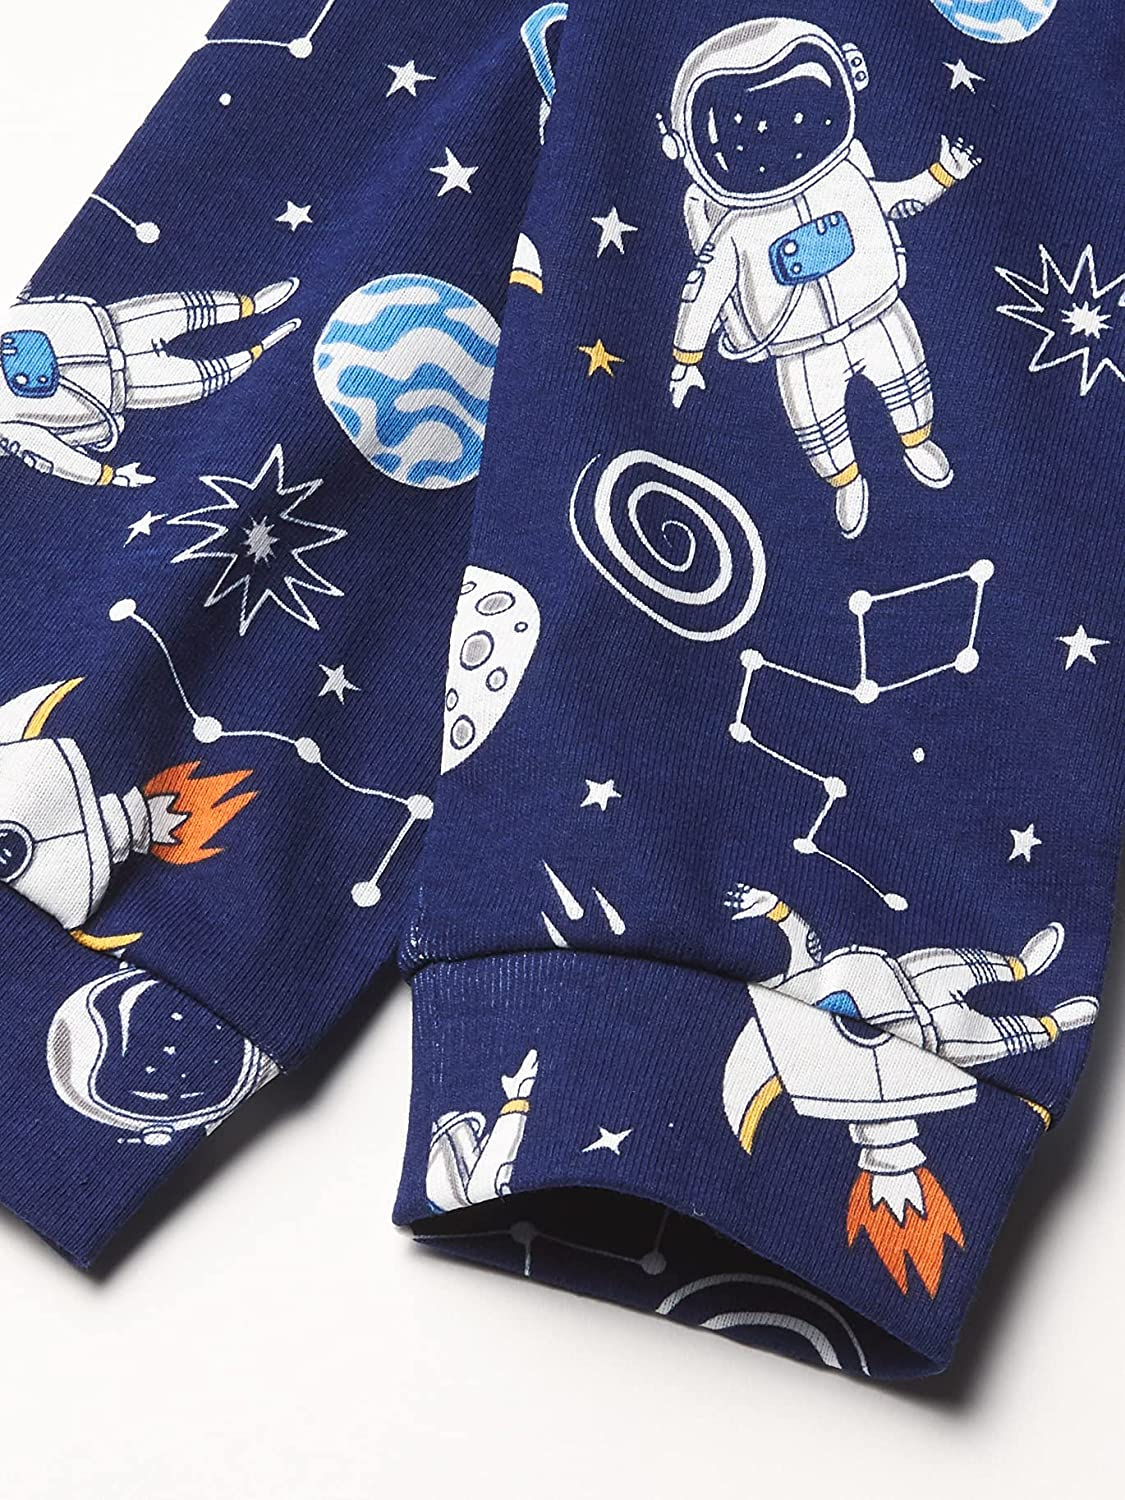 The Children's Place Baby And Toddler Boys Glow Space Snug Fit Cotton Pajamas